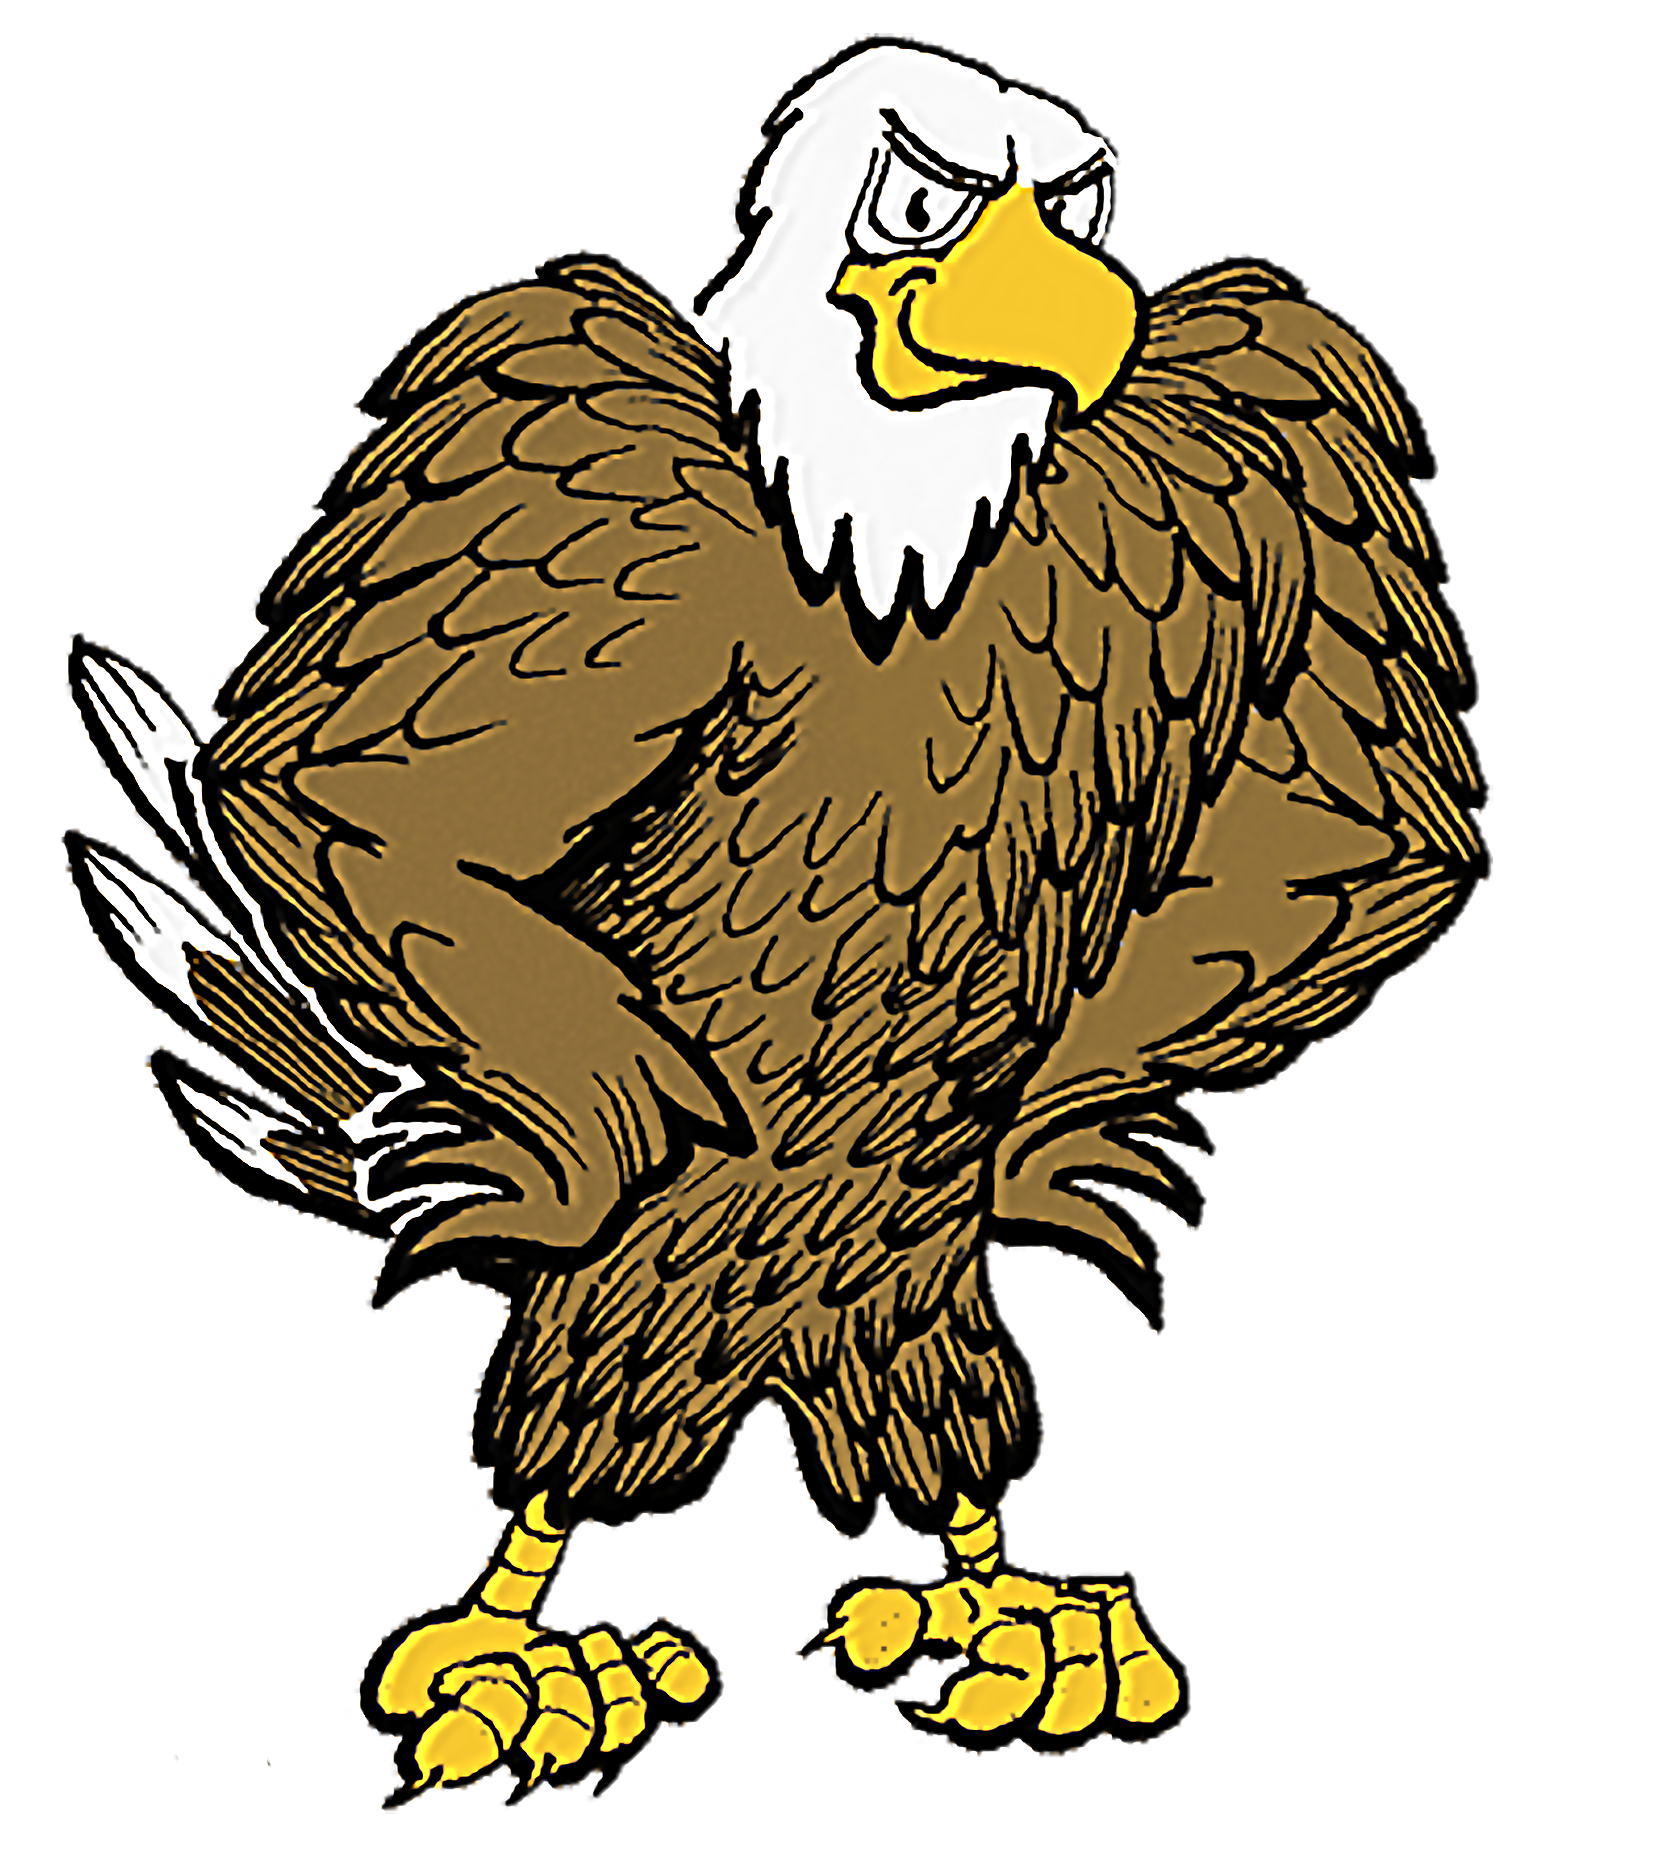 Eagle with football clipart. Fighting frames illustrations hd